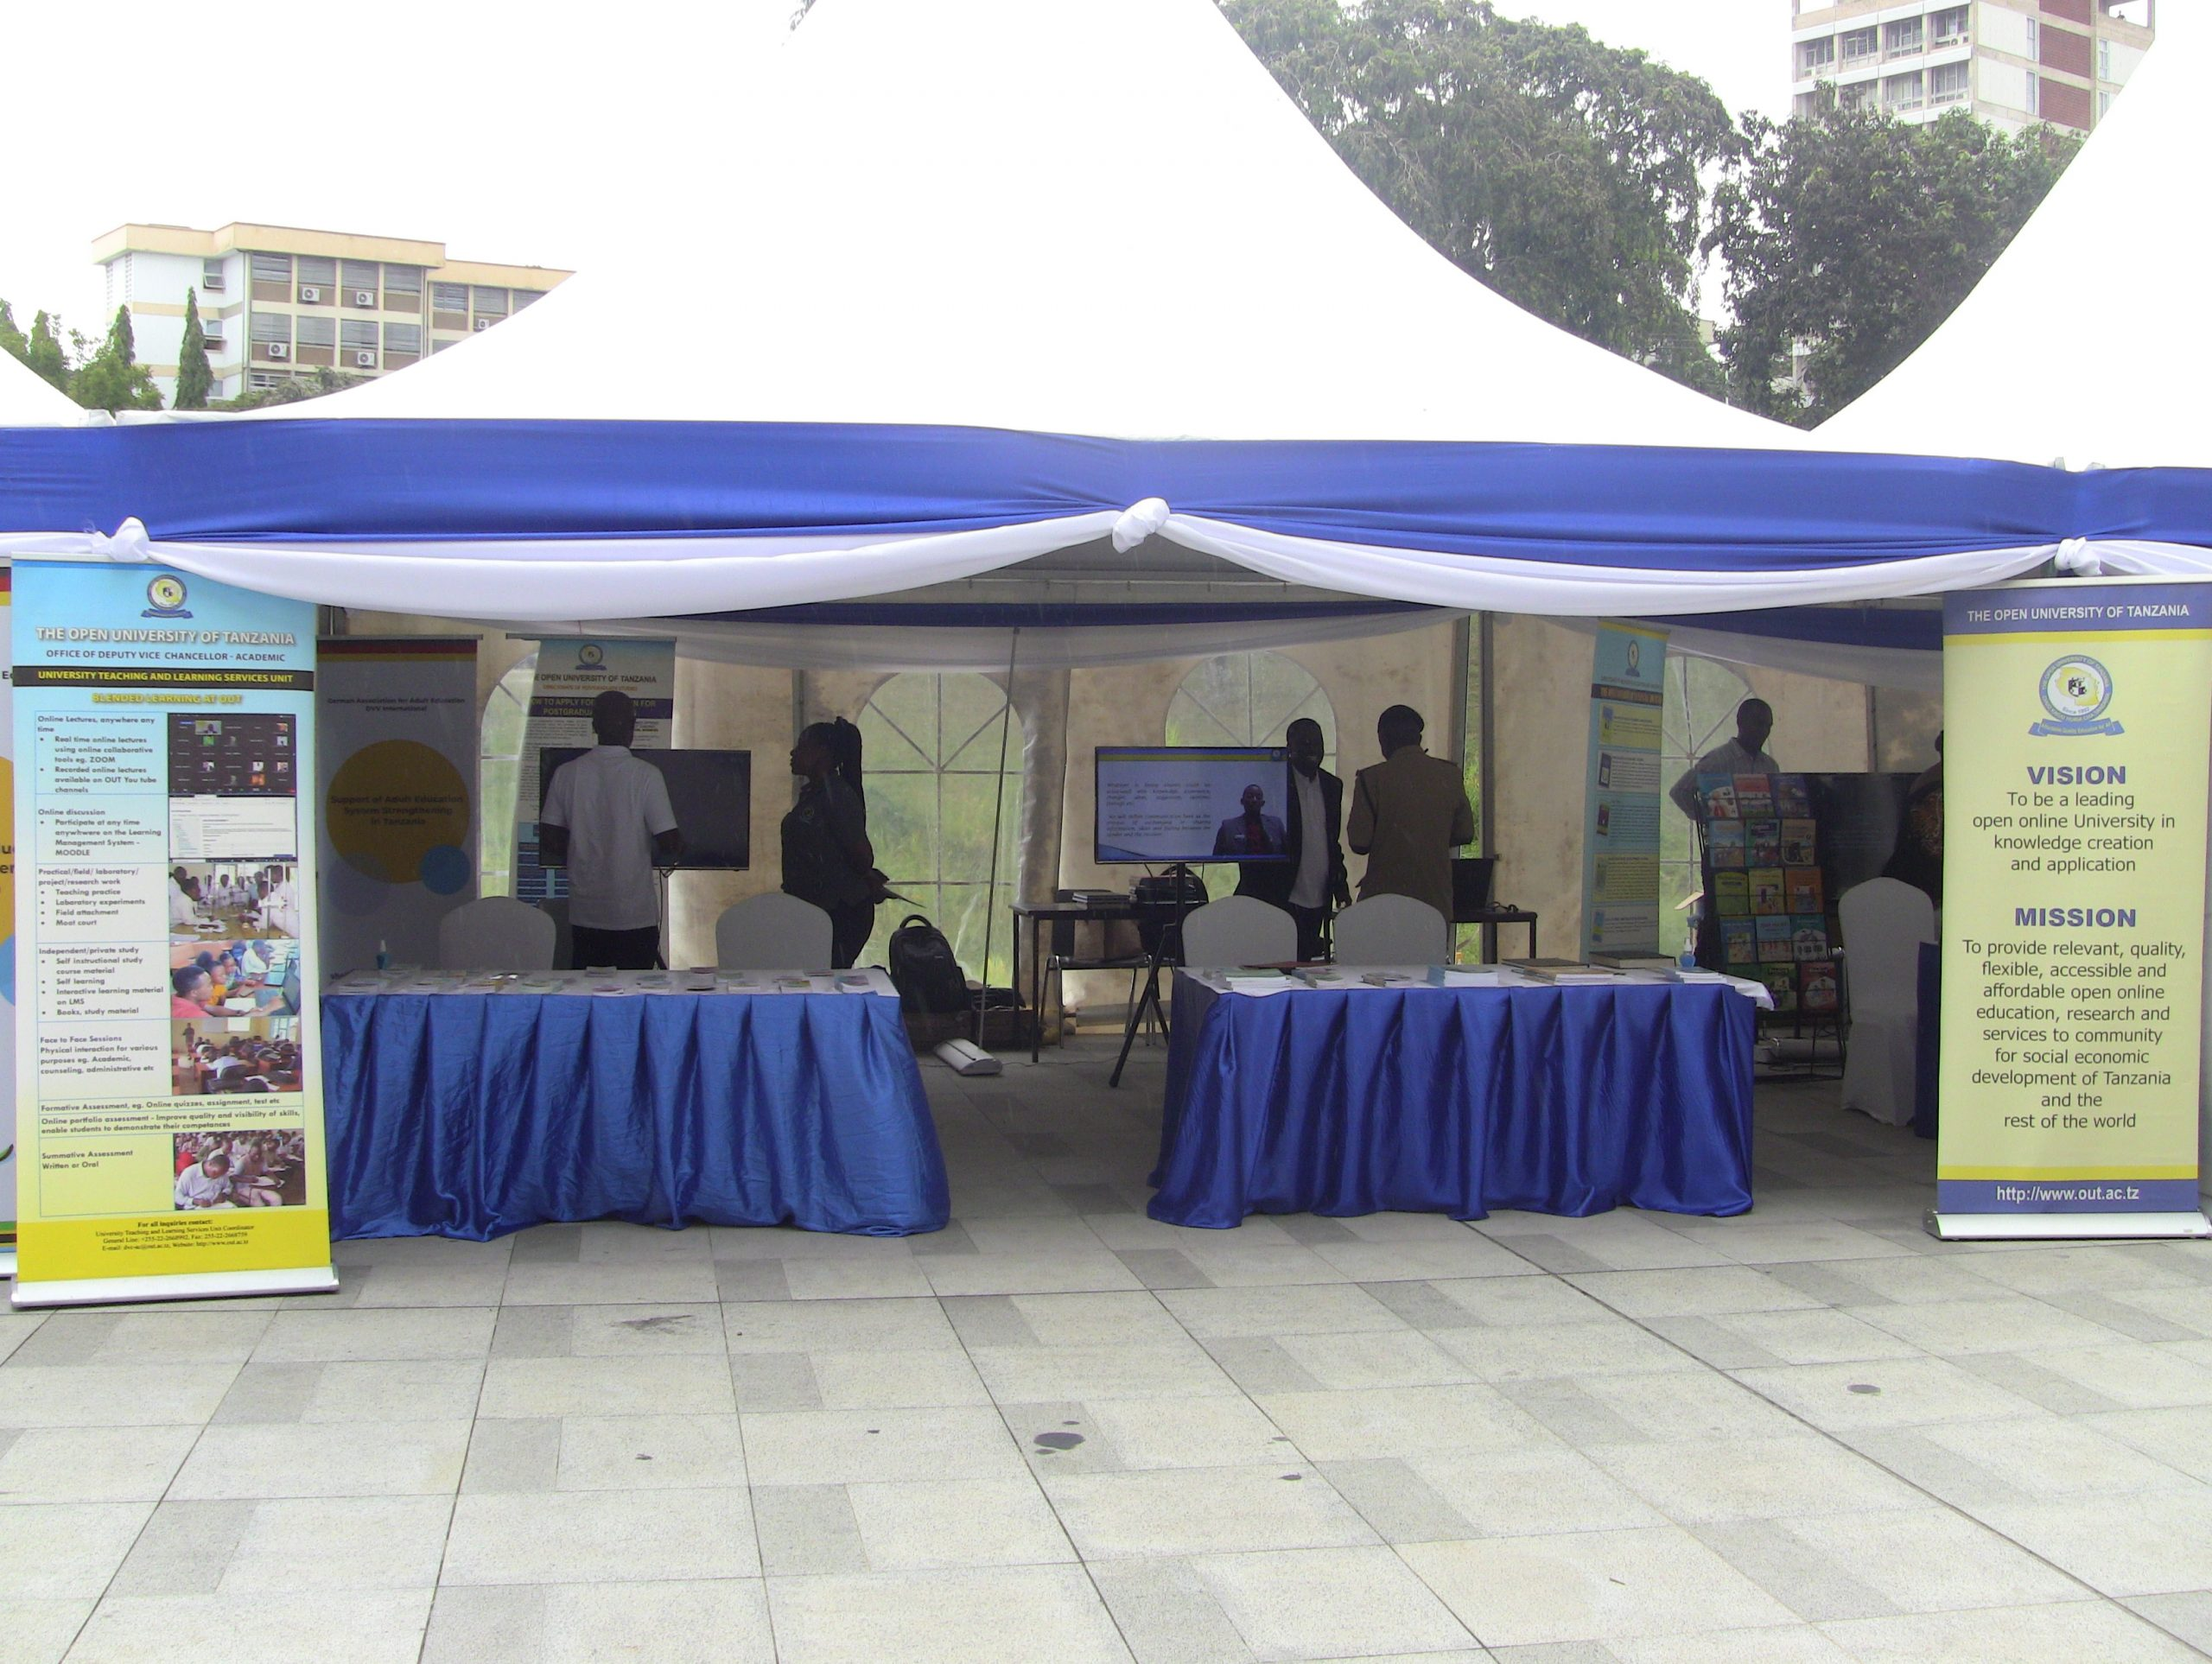 The Open University of Tanzania (OUT) participates in the marking of 50 years of Adult Education in Tanzania